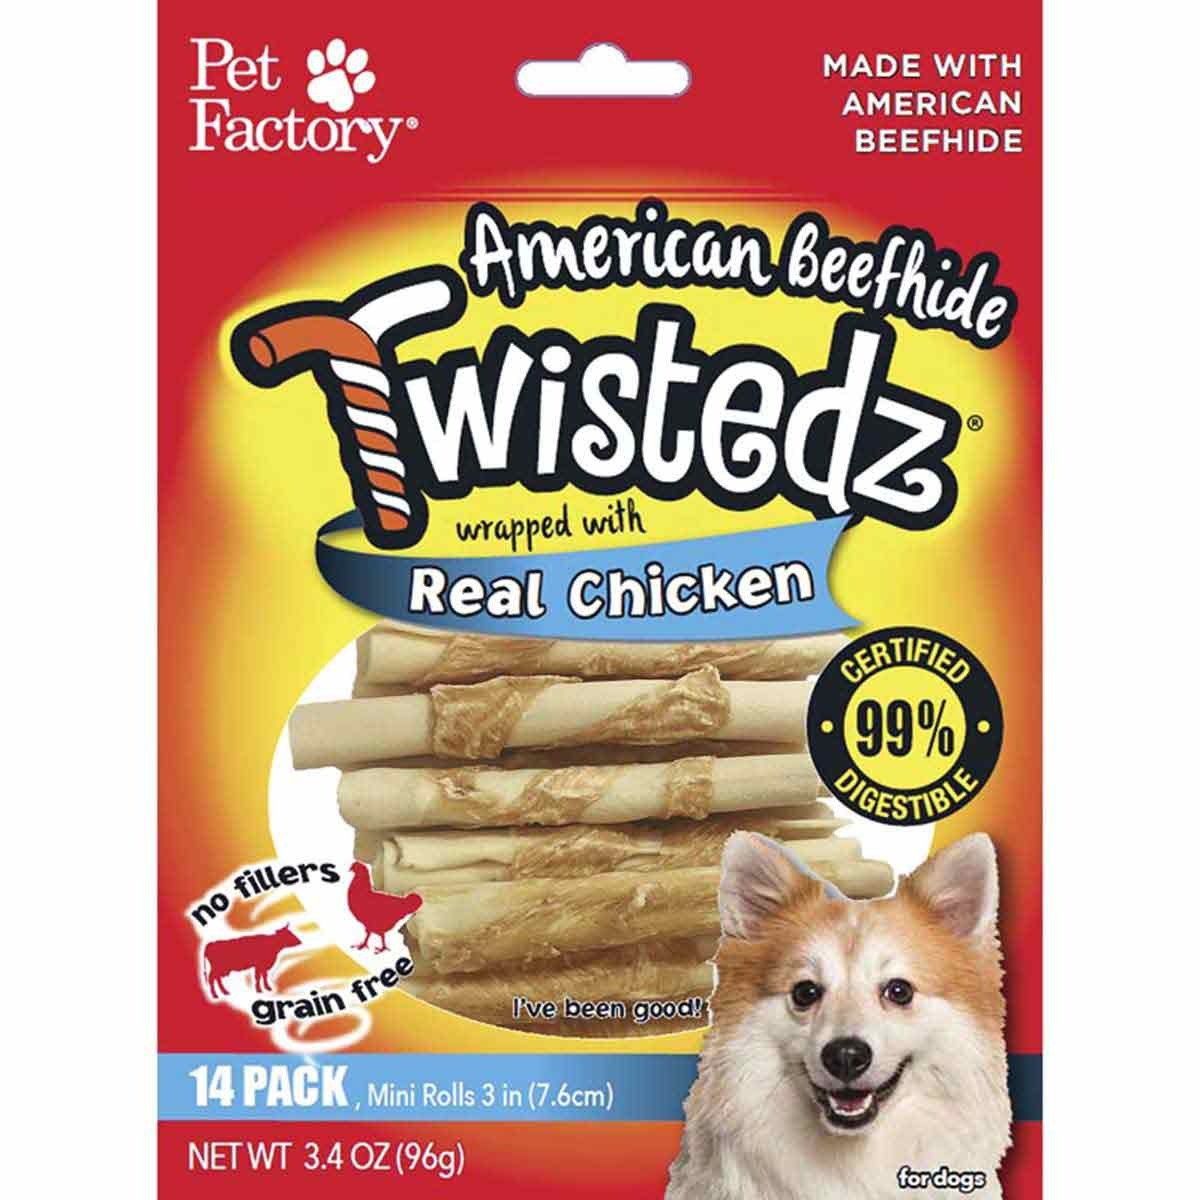 14 Pack Pet Factory Twistedz Chicken 3-3.5 inch Rolls